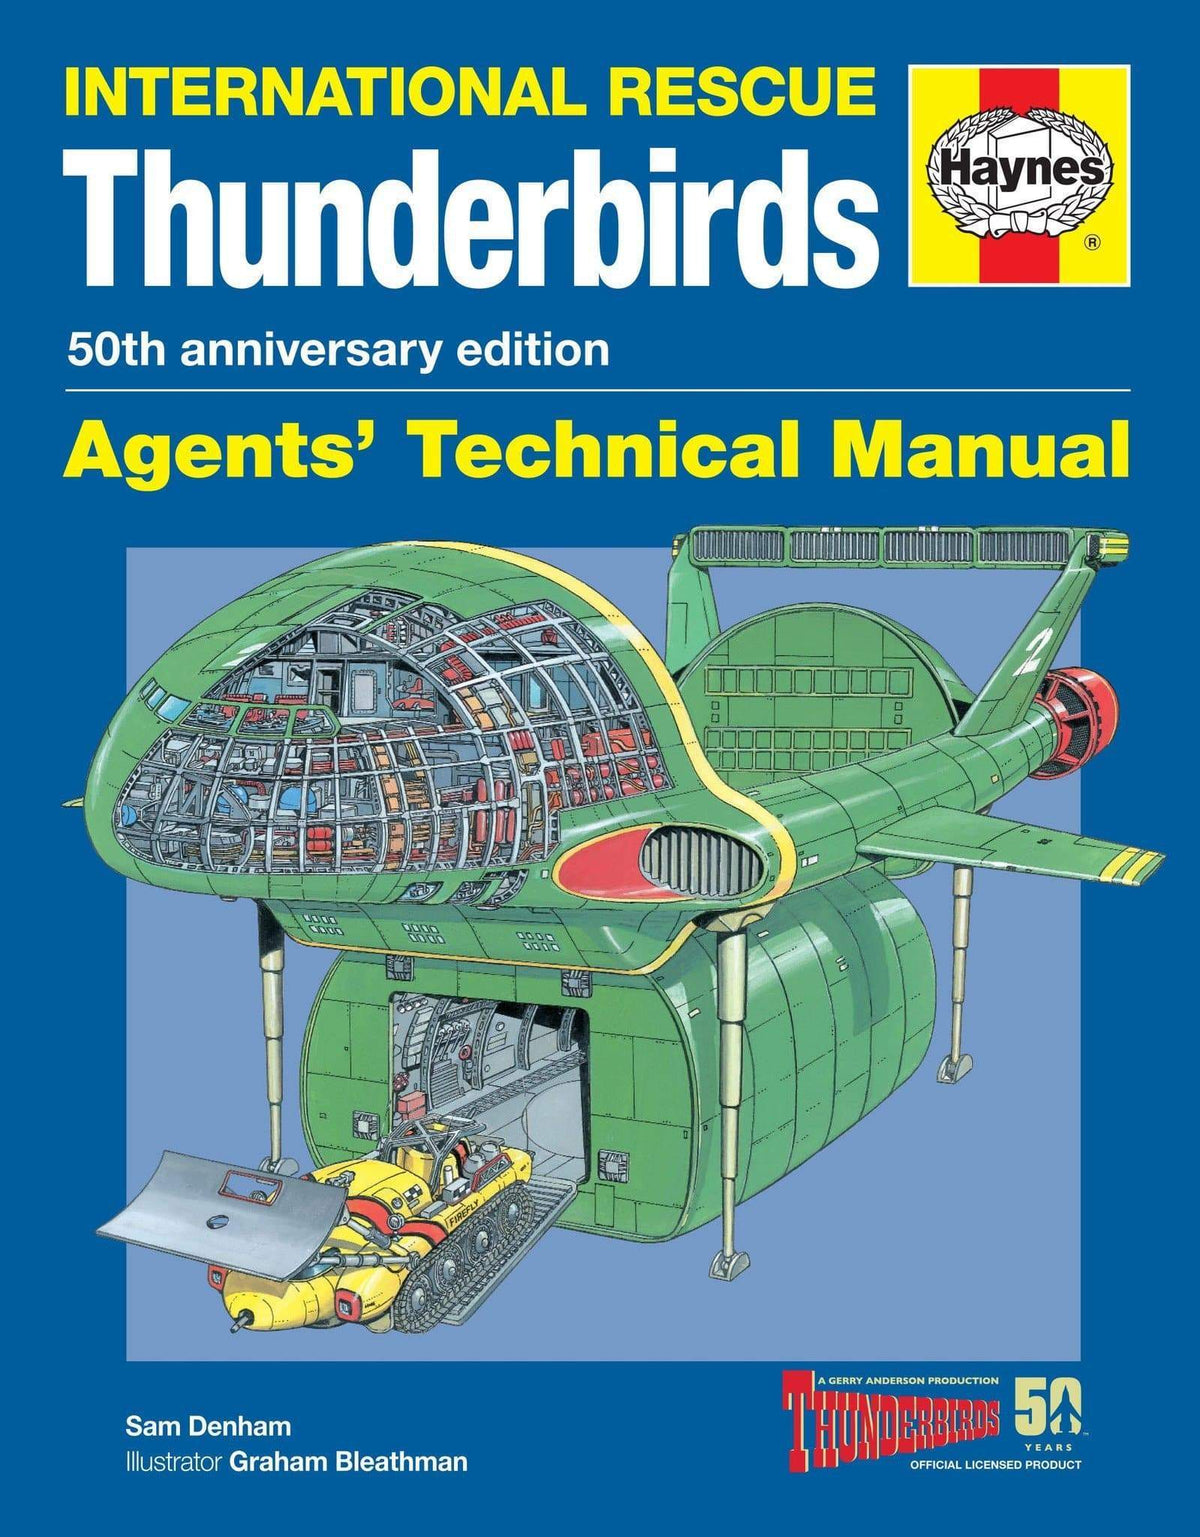 Haynes Thunderbirds Manual - The Gerry Anderson Store